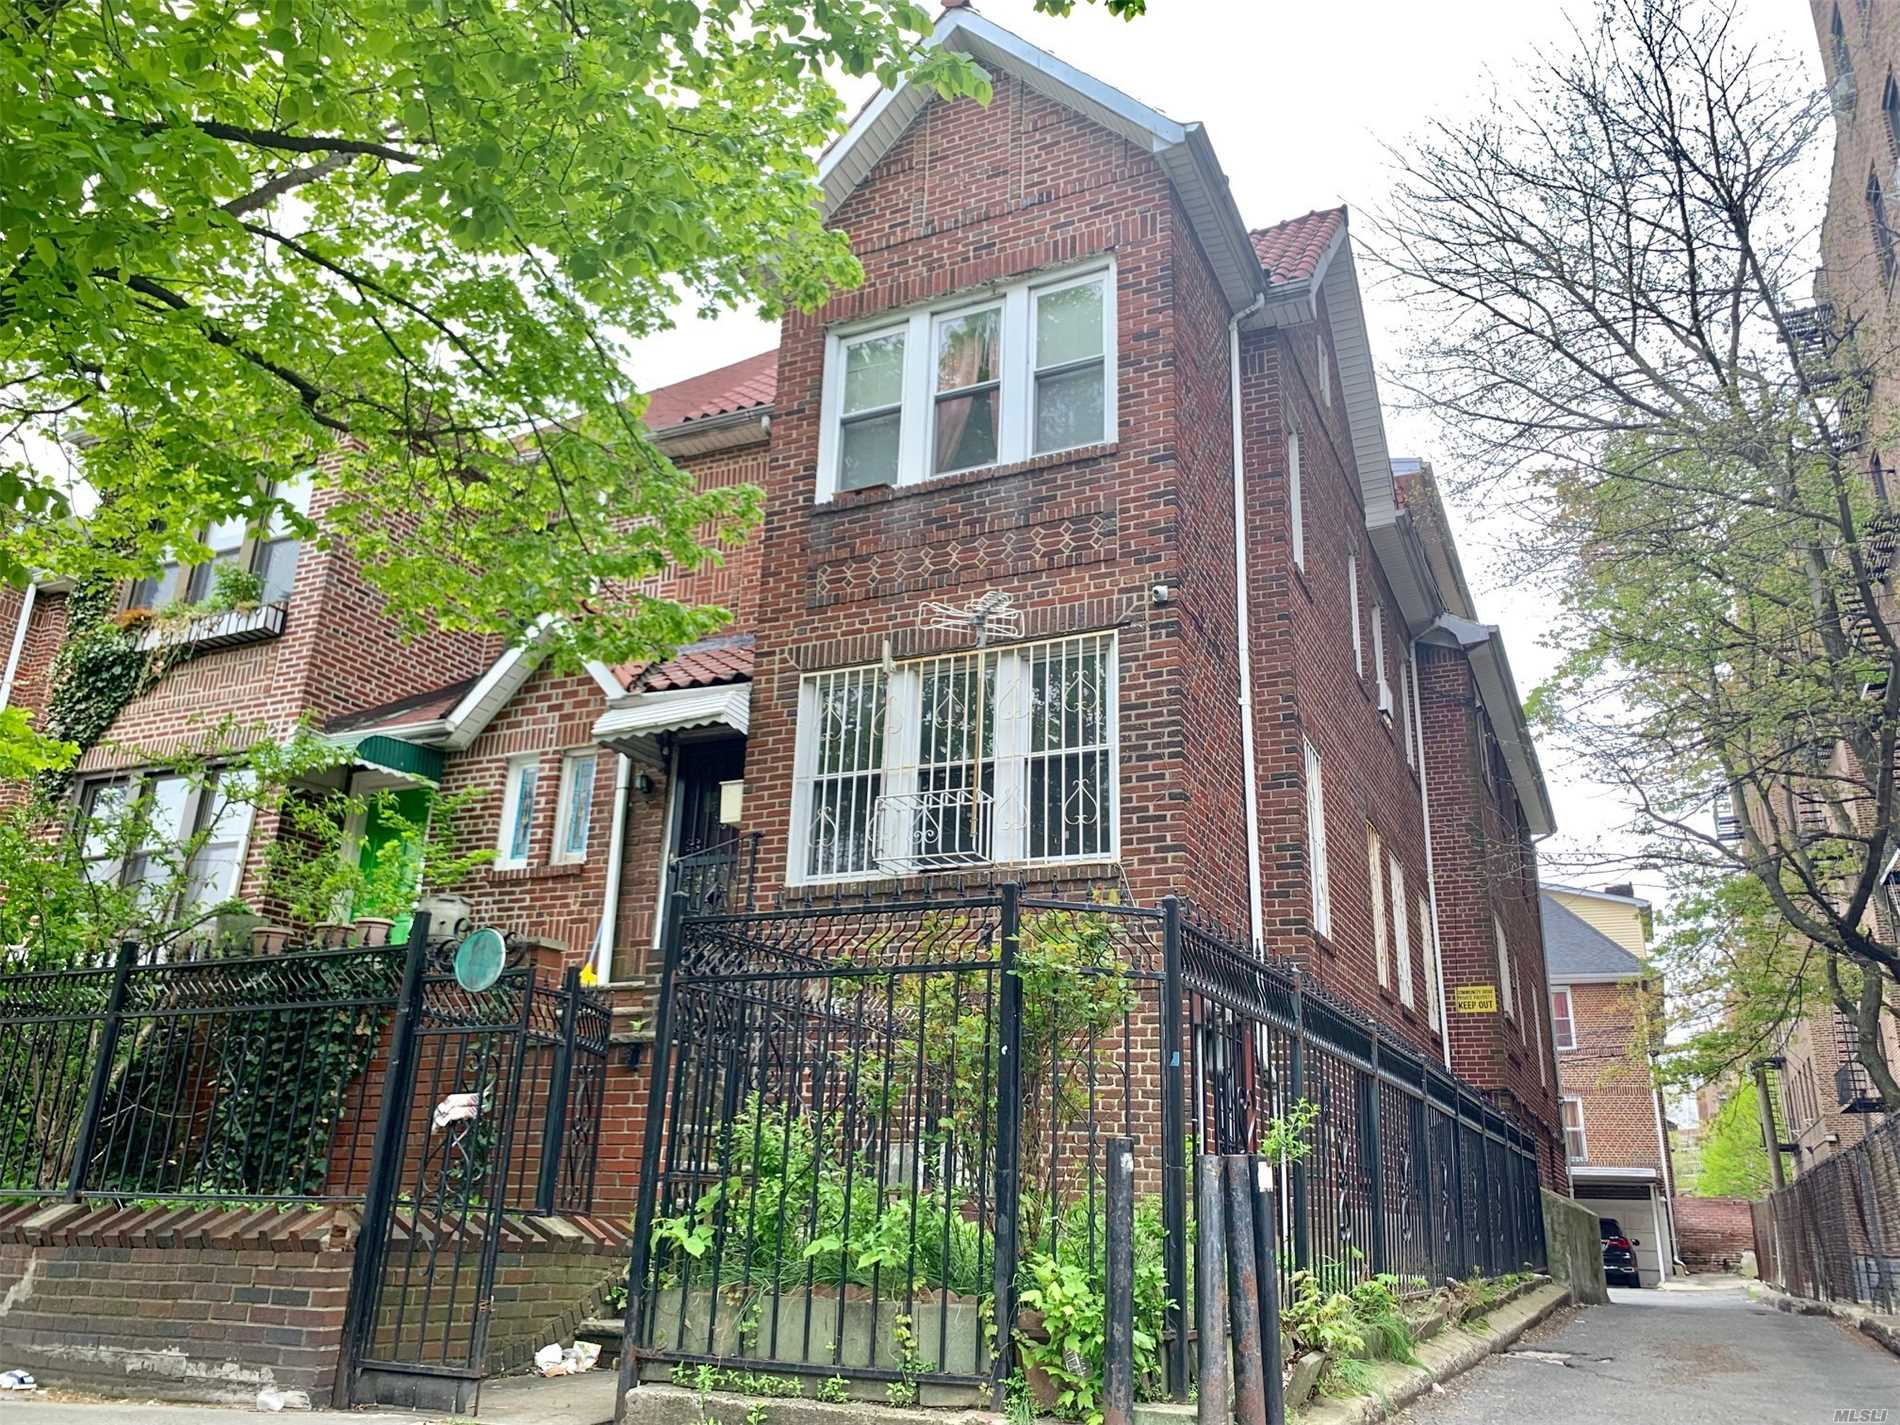 Legal Two Family, Semi-detached, Two Blocks From the 7 Train, 4 bdrms, LR/DR, 2 Full Baths on First floor and second floor, 1 Bedroom and 1 Full bath on the third floor, Walk in basement has attached two garages, 3 large Rooms, Full bath,  Two Additional Parking Space At the Rear of The House , Lot 32x100 and Building 22x65.75. Close to School s, stores and public transportations.